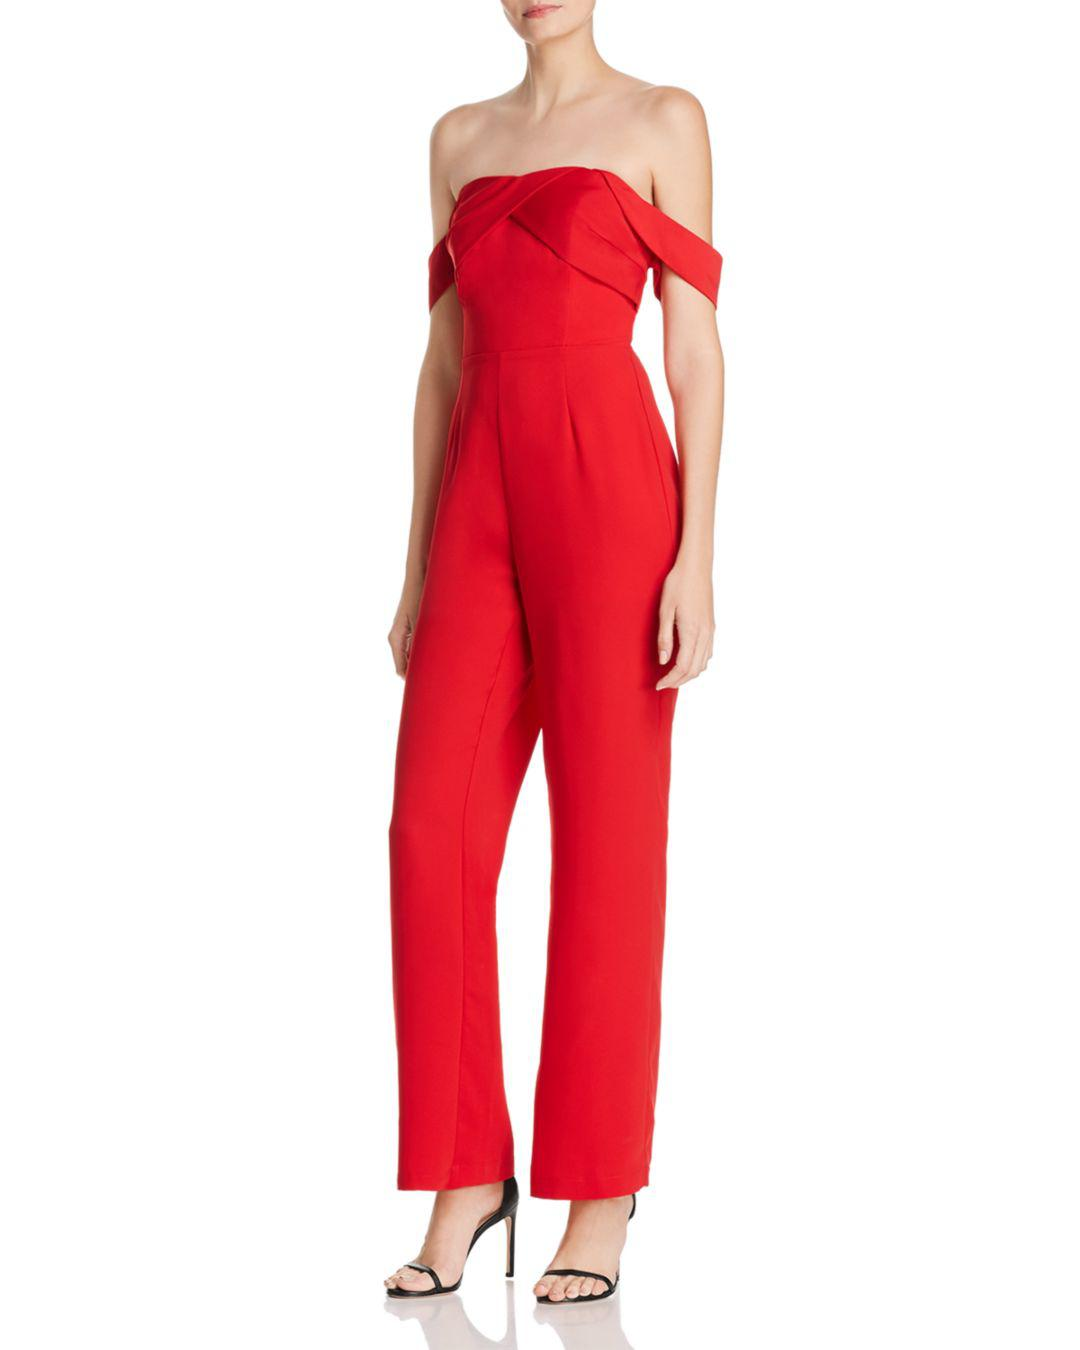 9947e7b8426 Lyst - Adelyn Rae Woven Strapless Jumpsuit in Red